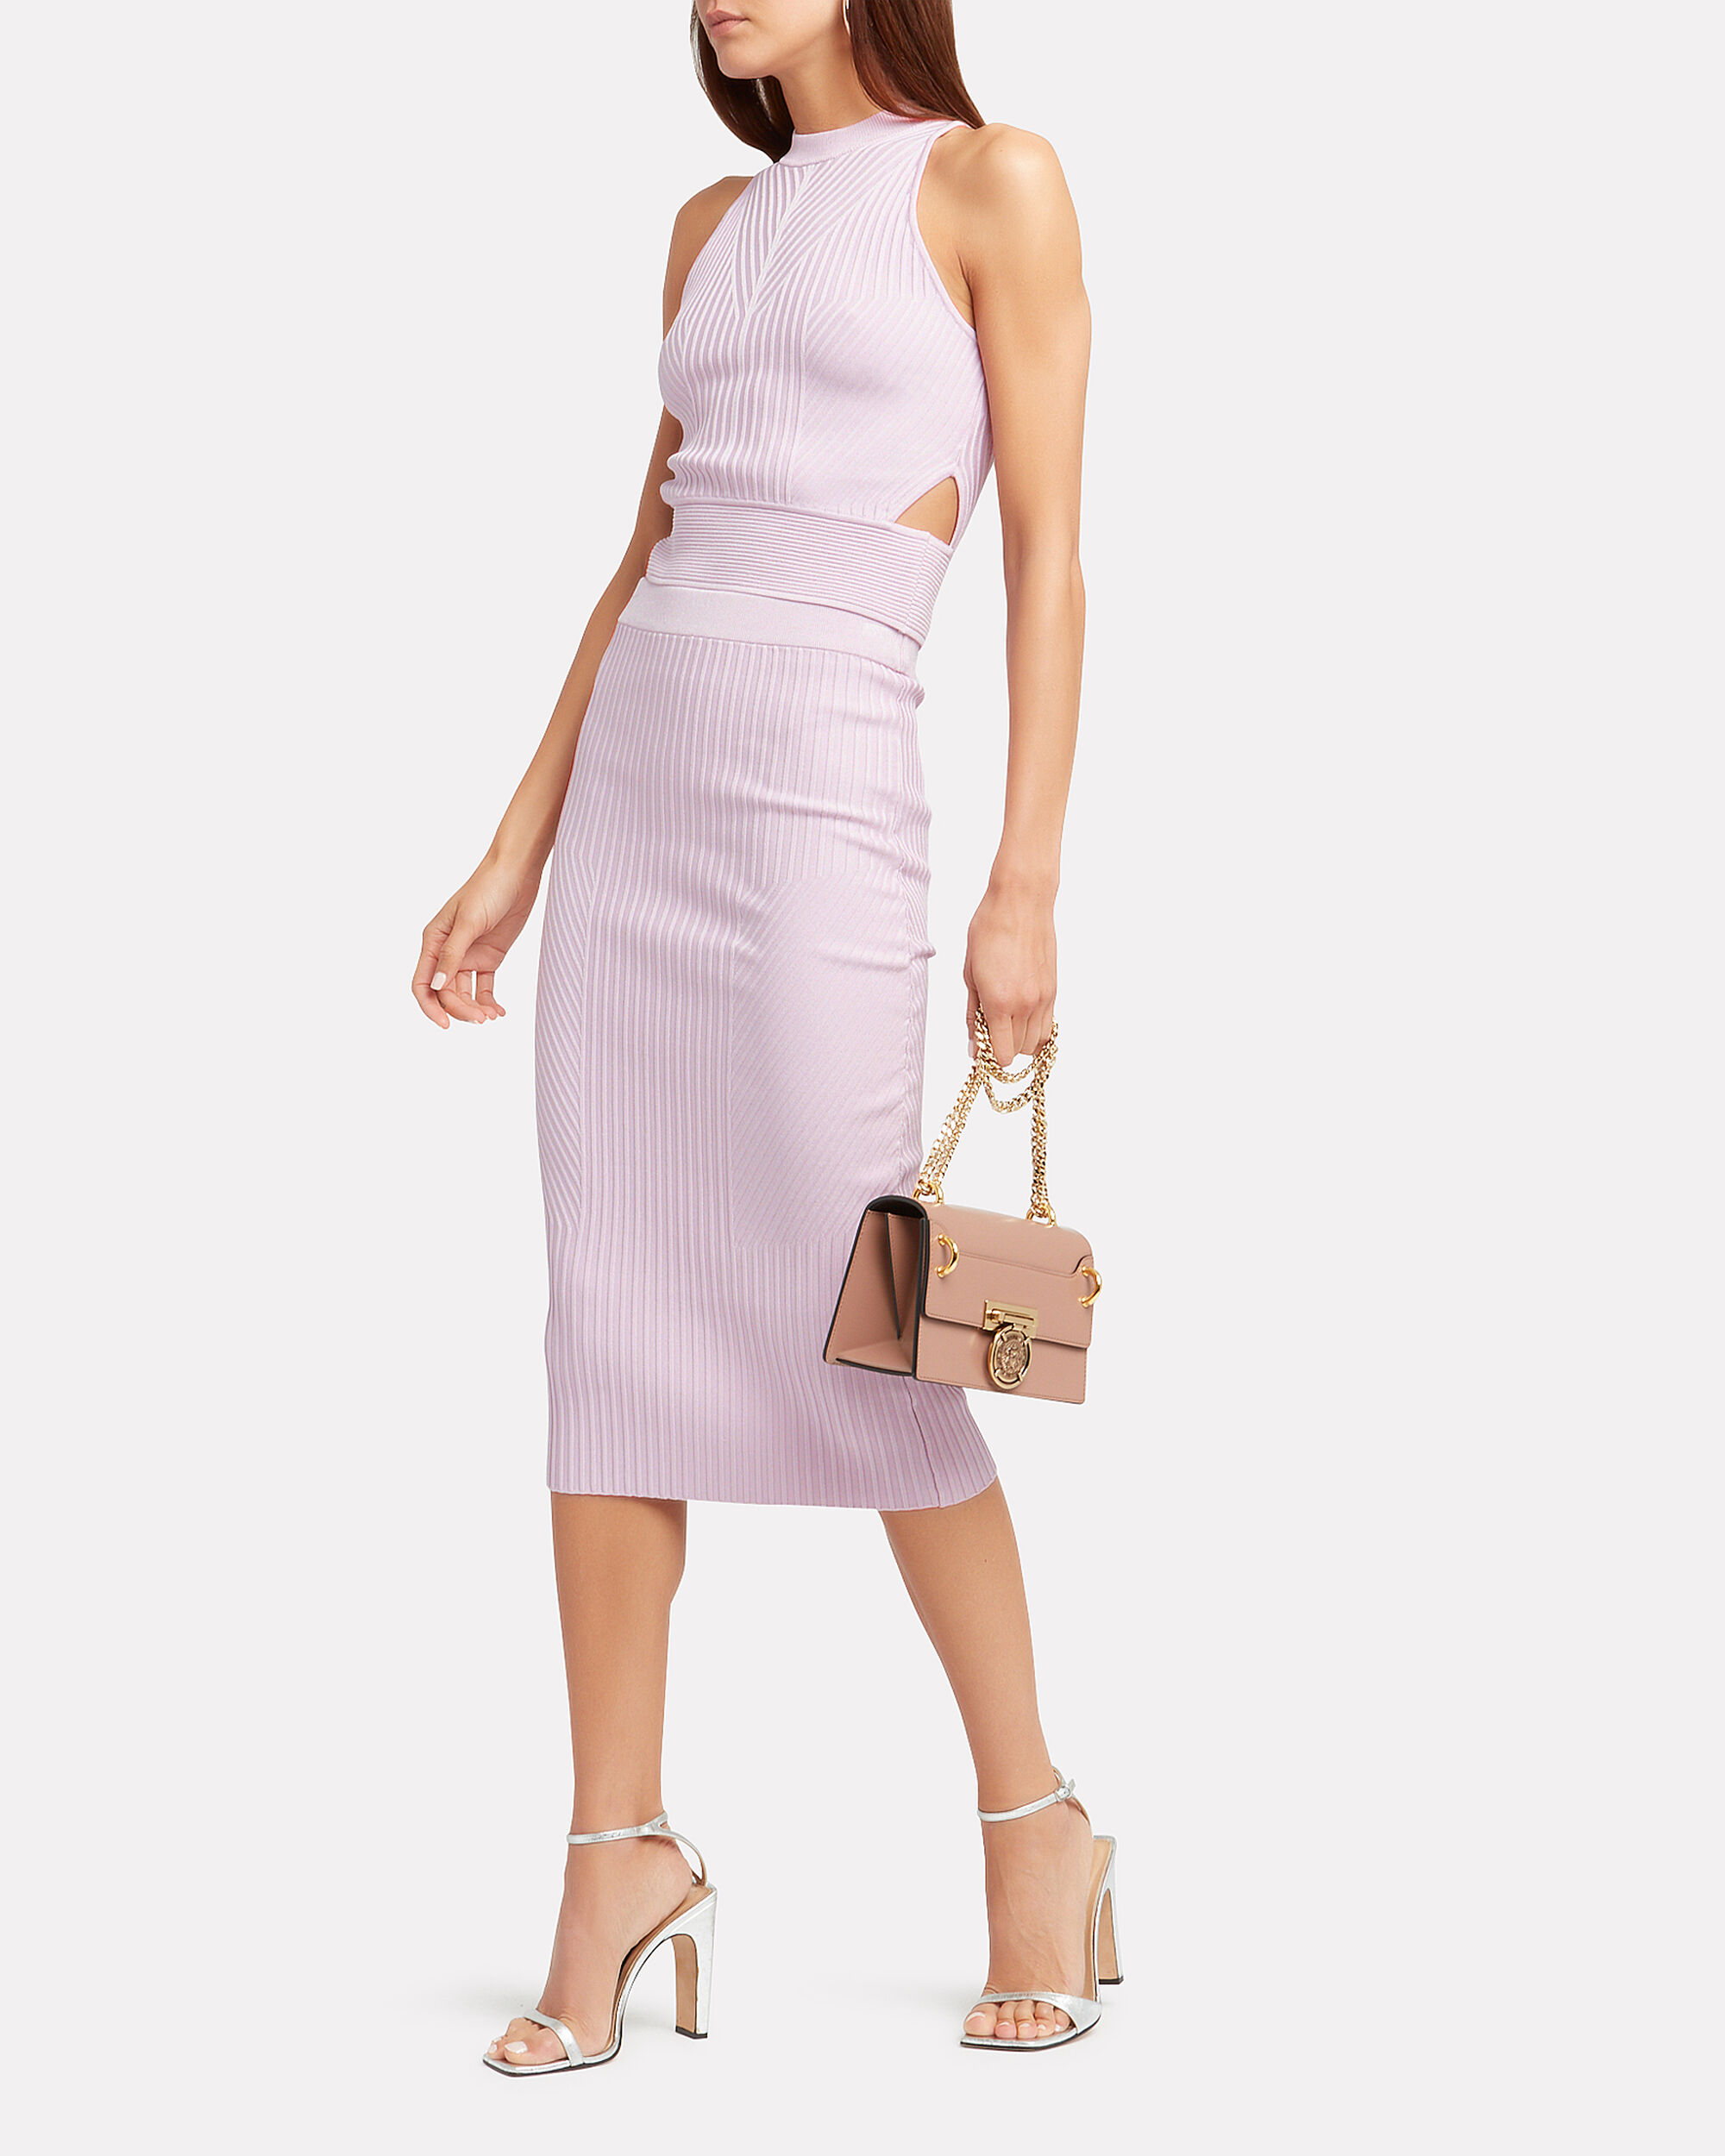 Lavender Rib Knit Pencil Skirt, LAVENDER, hi-res